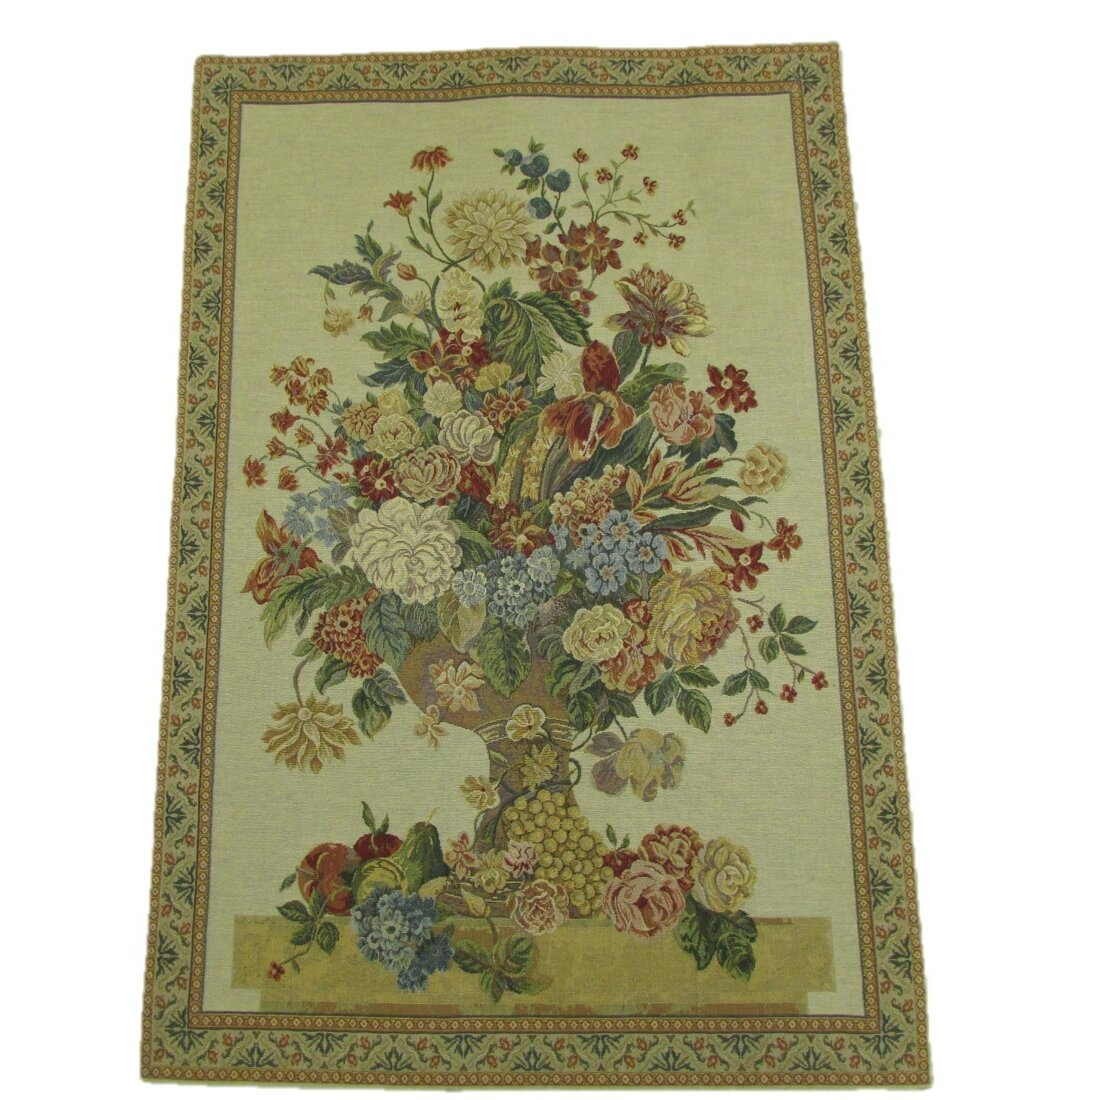 Majestic Bouquet Tapestry Within Most Current Blended Fabric Irises Tapestries (View 13 of 20)